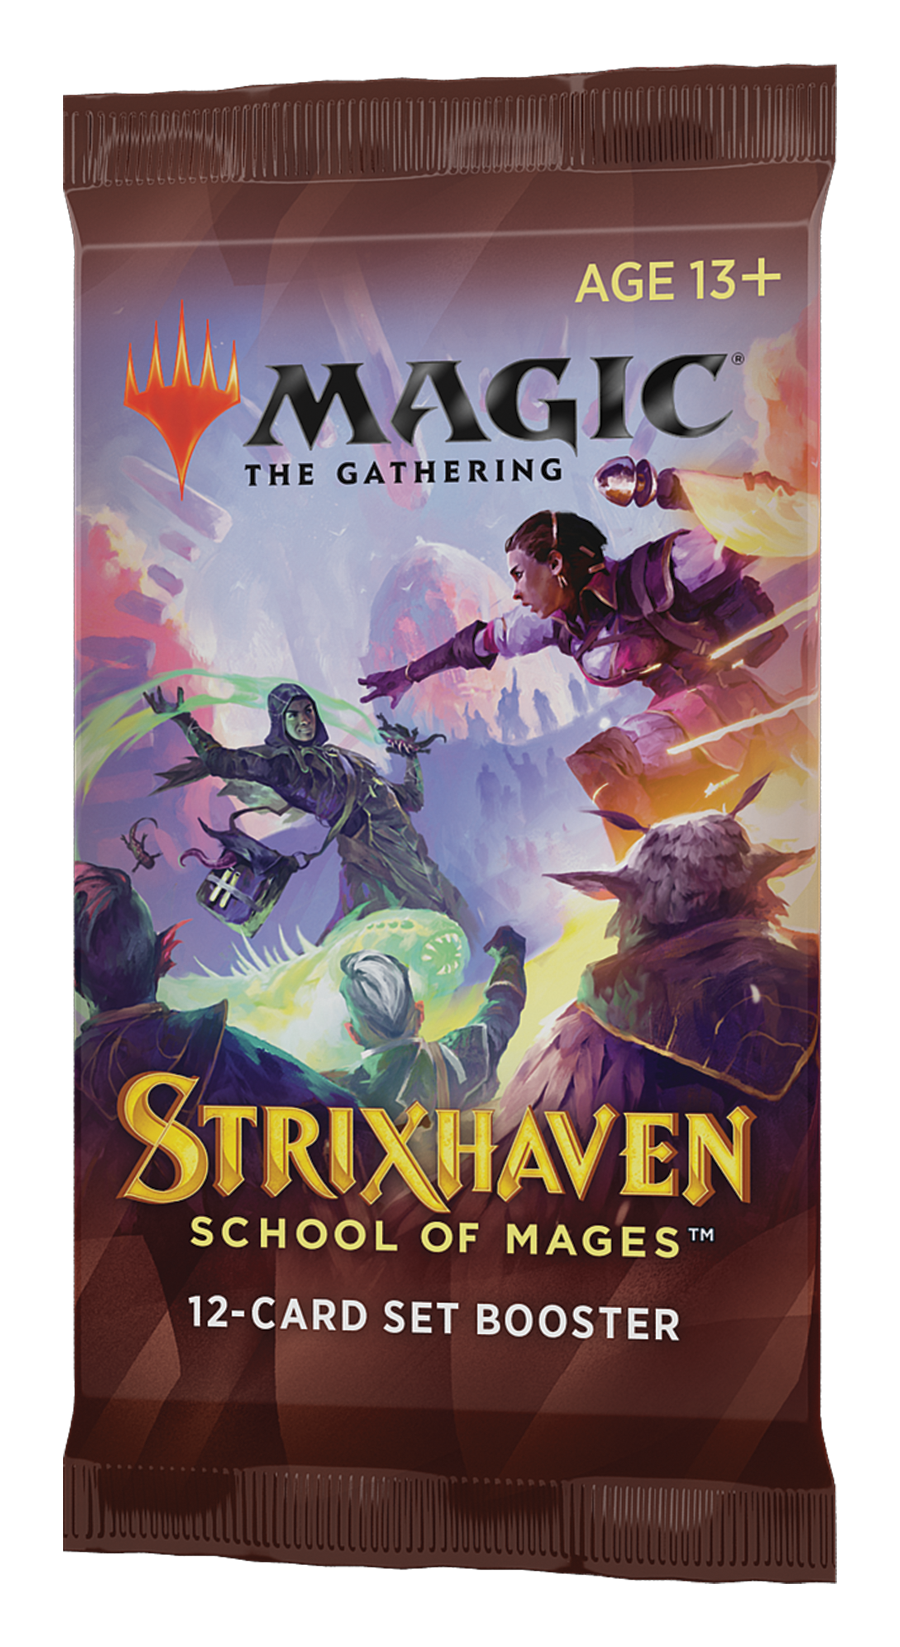 Set Booster Pack - Strixhaven: School of Mages